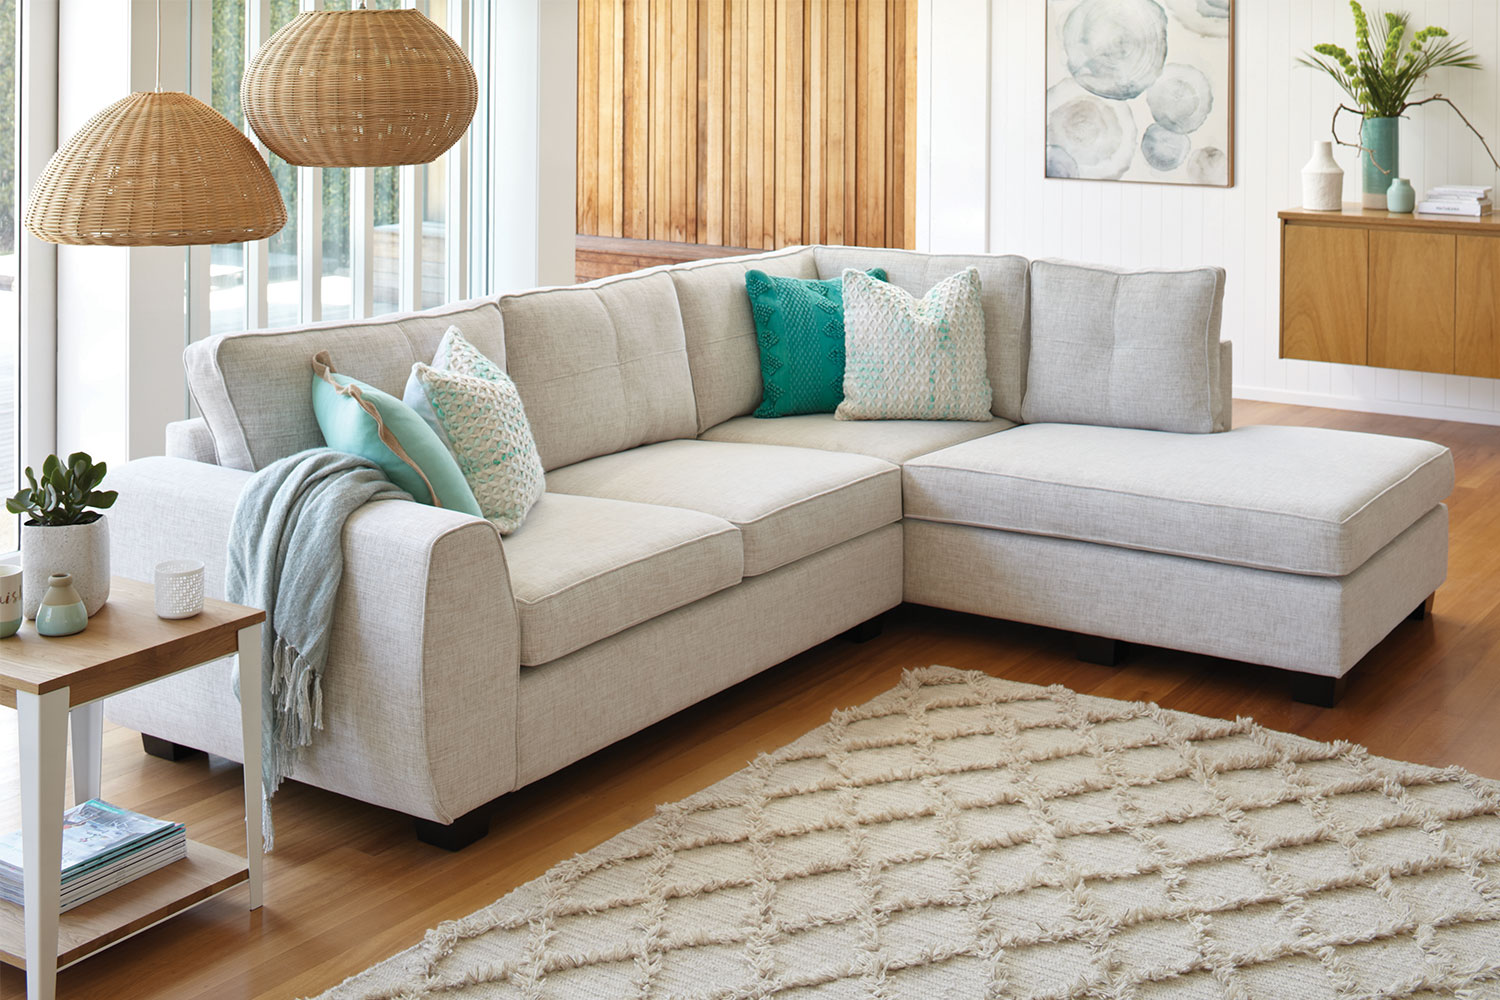 Sofa Lounge Nz Albany 4 Seater Fabric Sofa With Chaise By White Rose